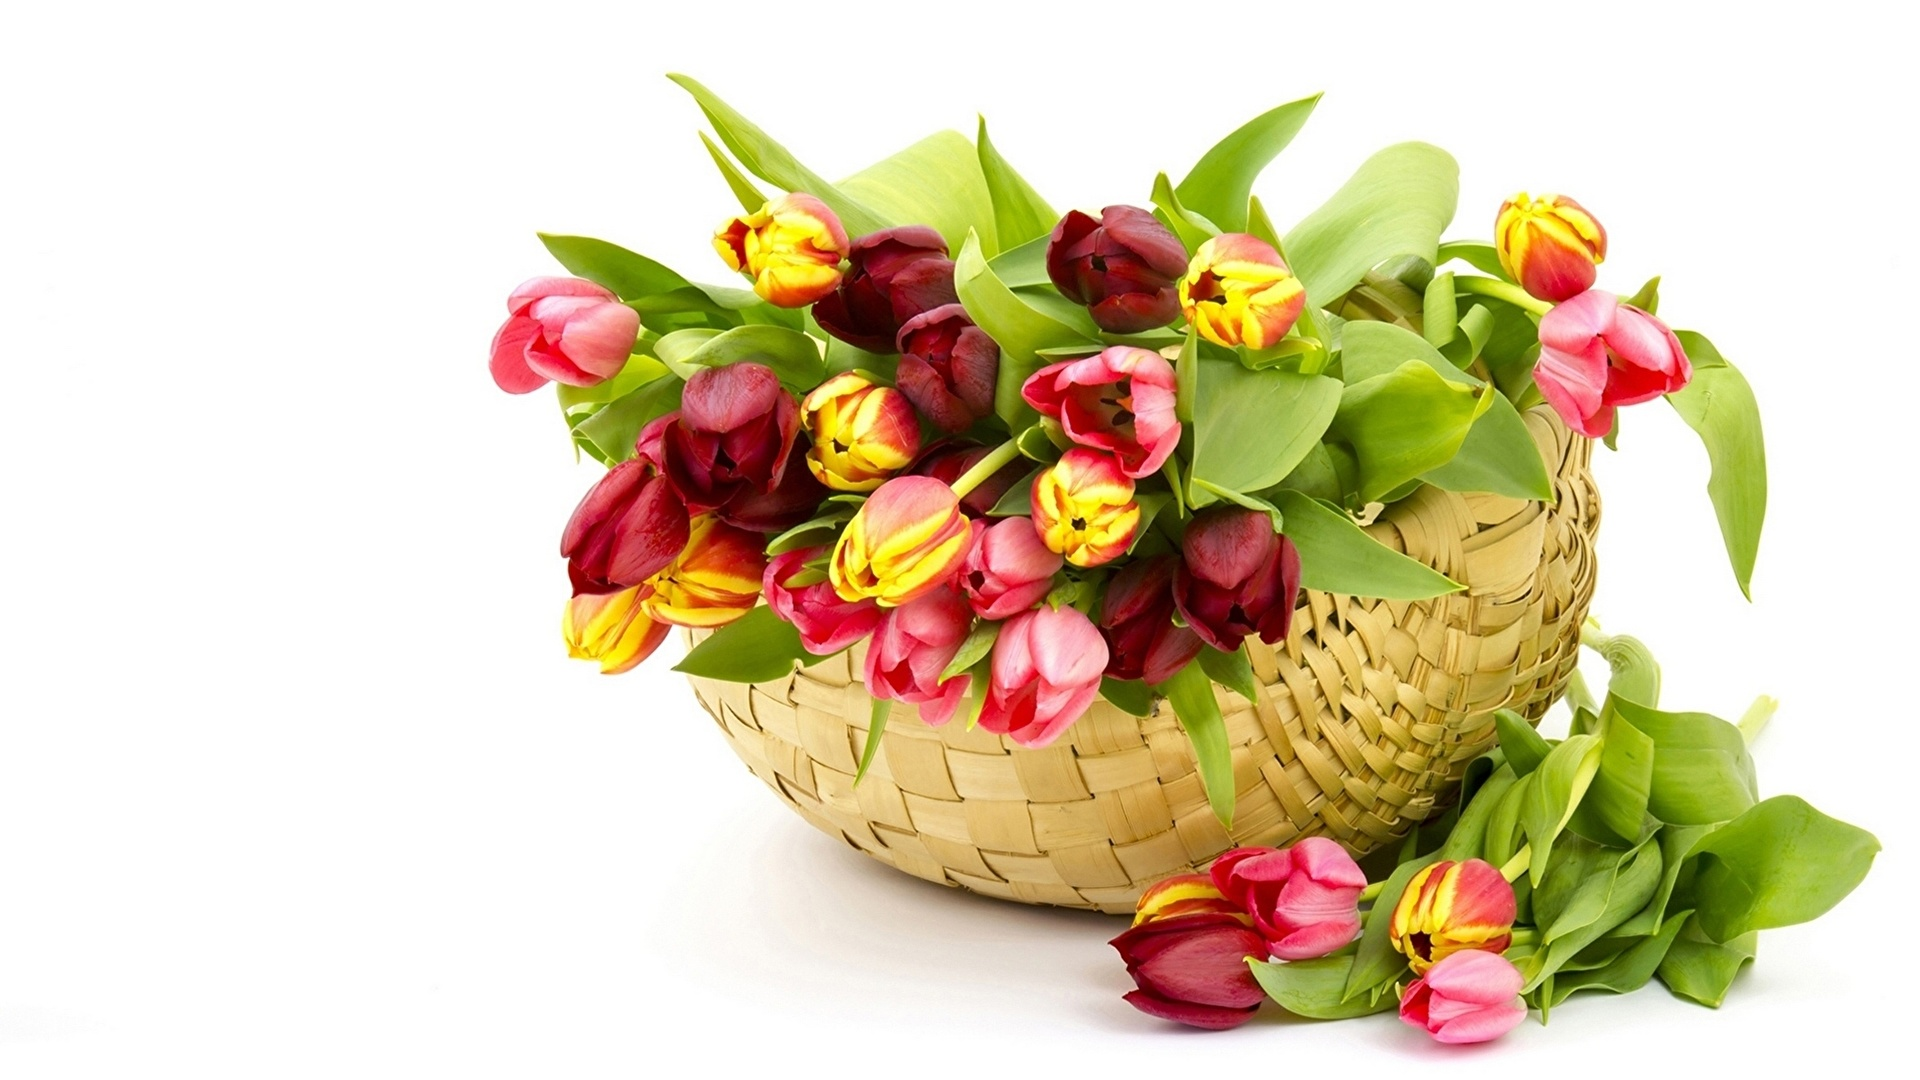 Basket With Flowers full hd image